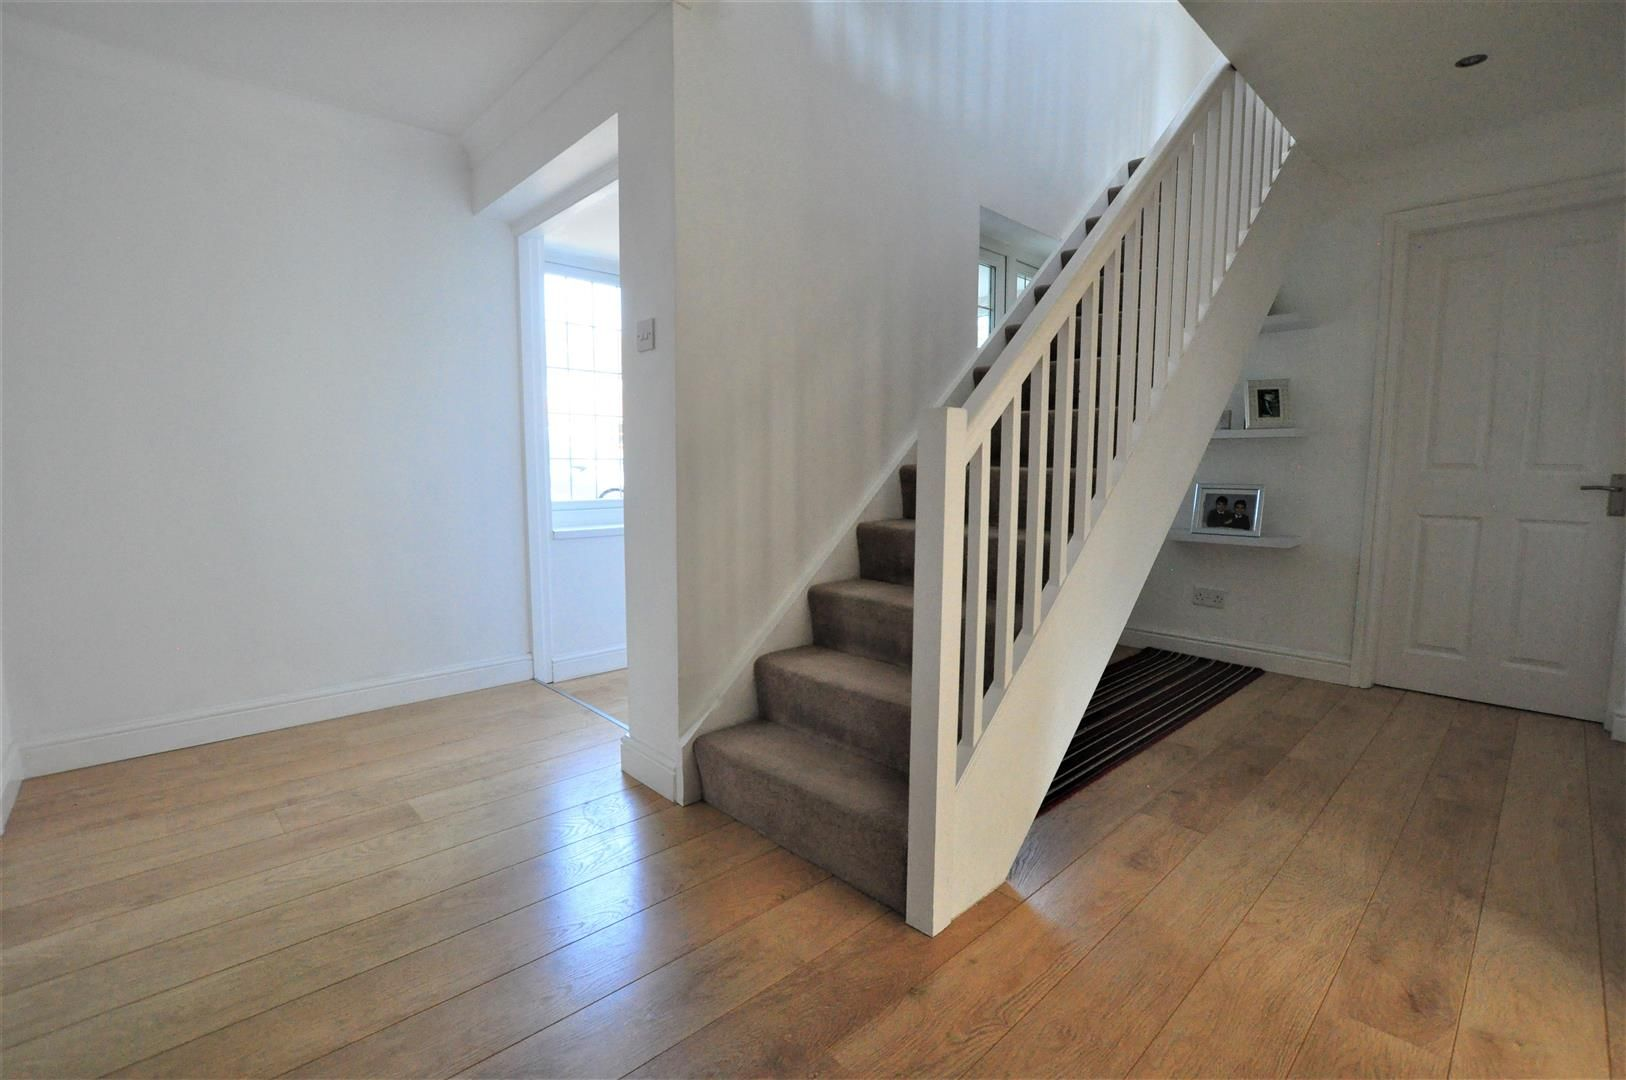 4 bed house for sale in Hagley 4